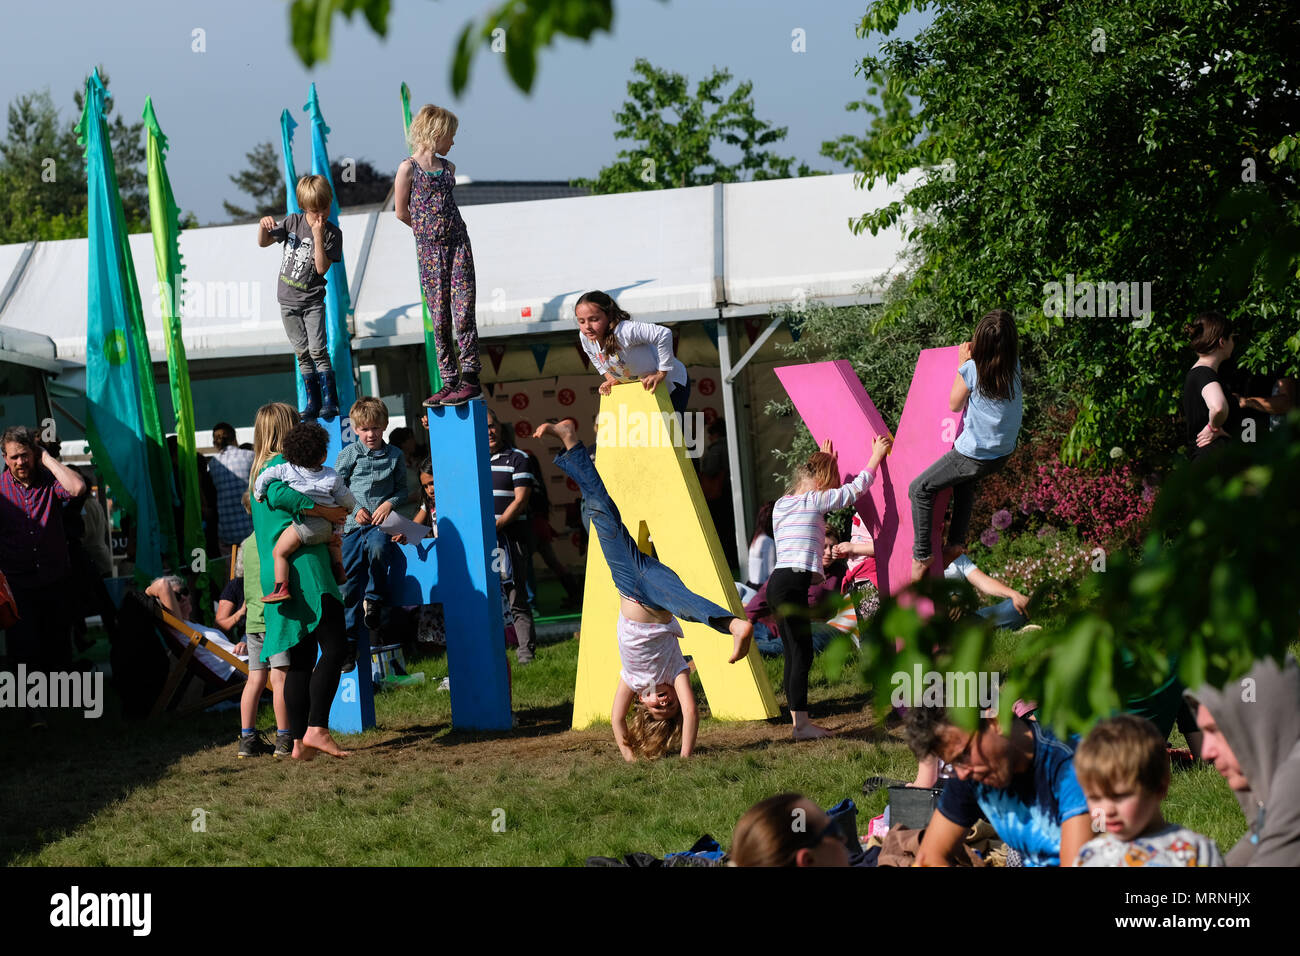 Hay Festival, Hay on Wye, UK - May 2018 - Children play on the giant HAY letters on the Festival lawn as the late afternoon sun shines on Hay - Photo Steven May / Alamy Live News - Stock Image